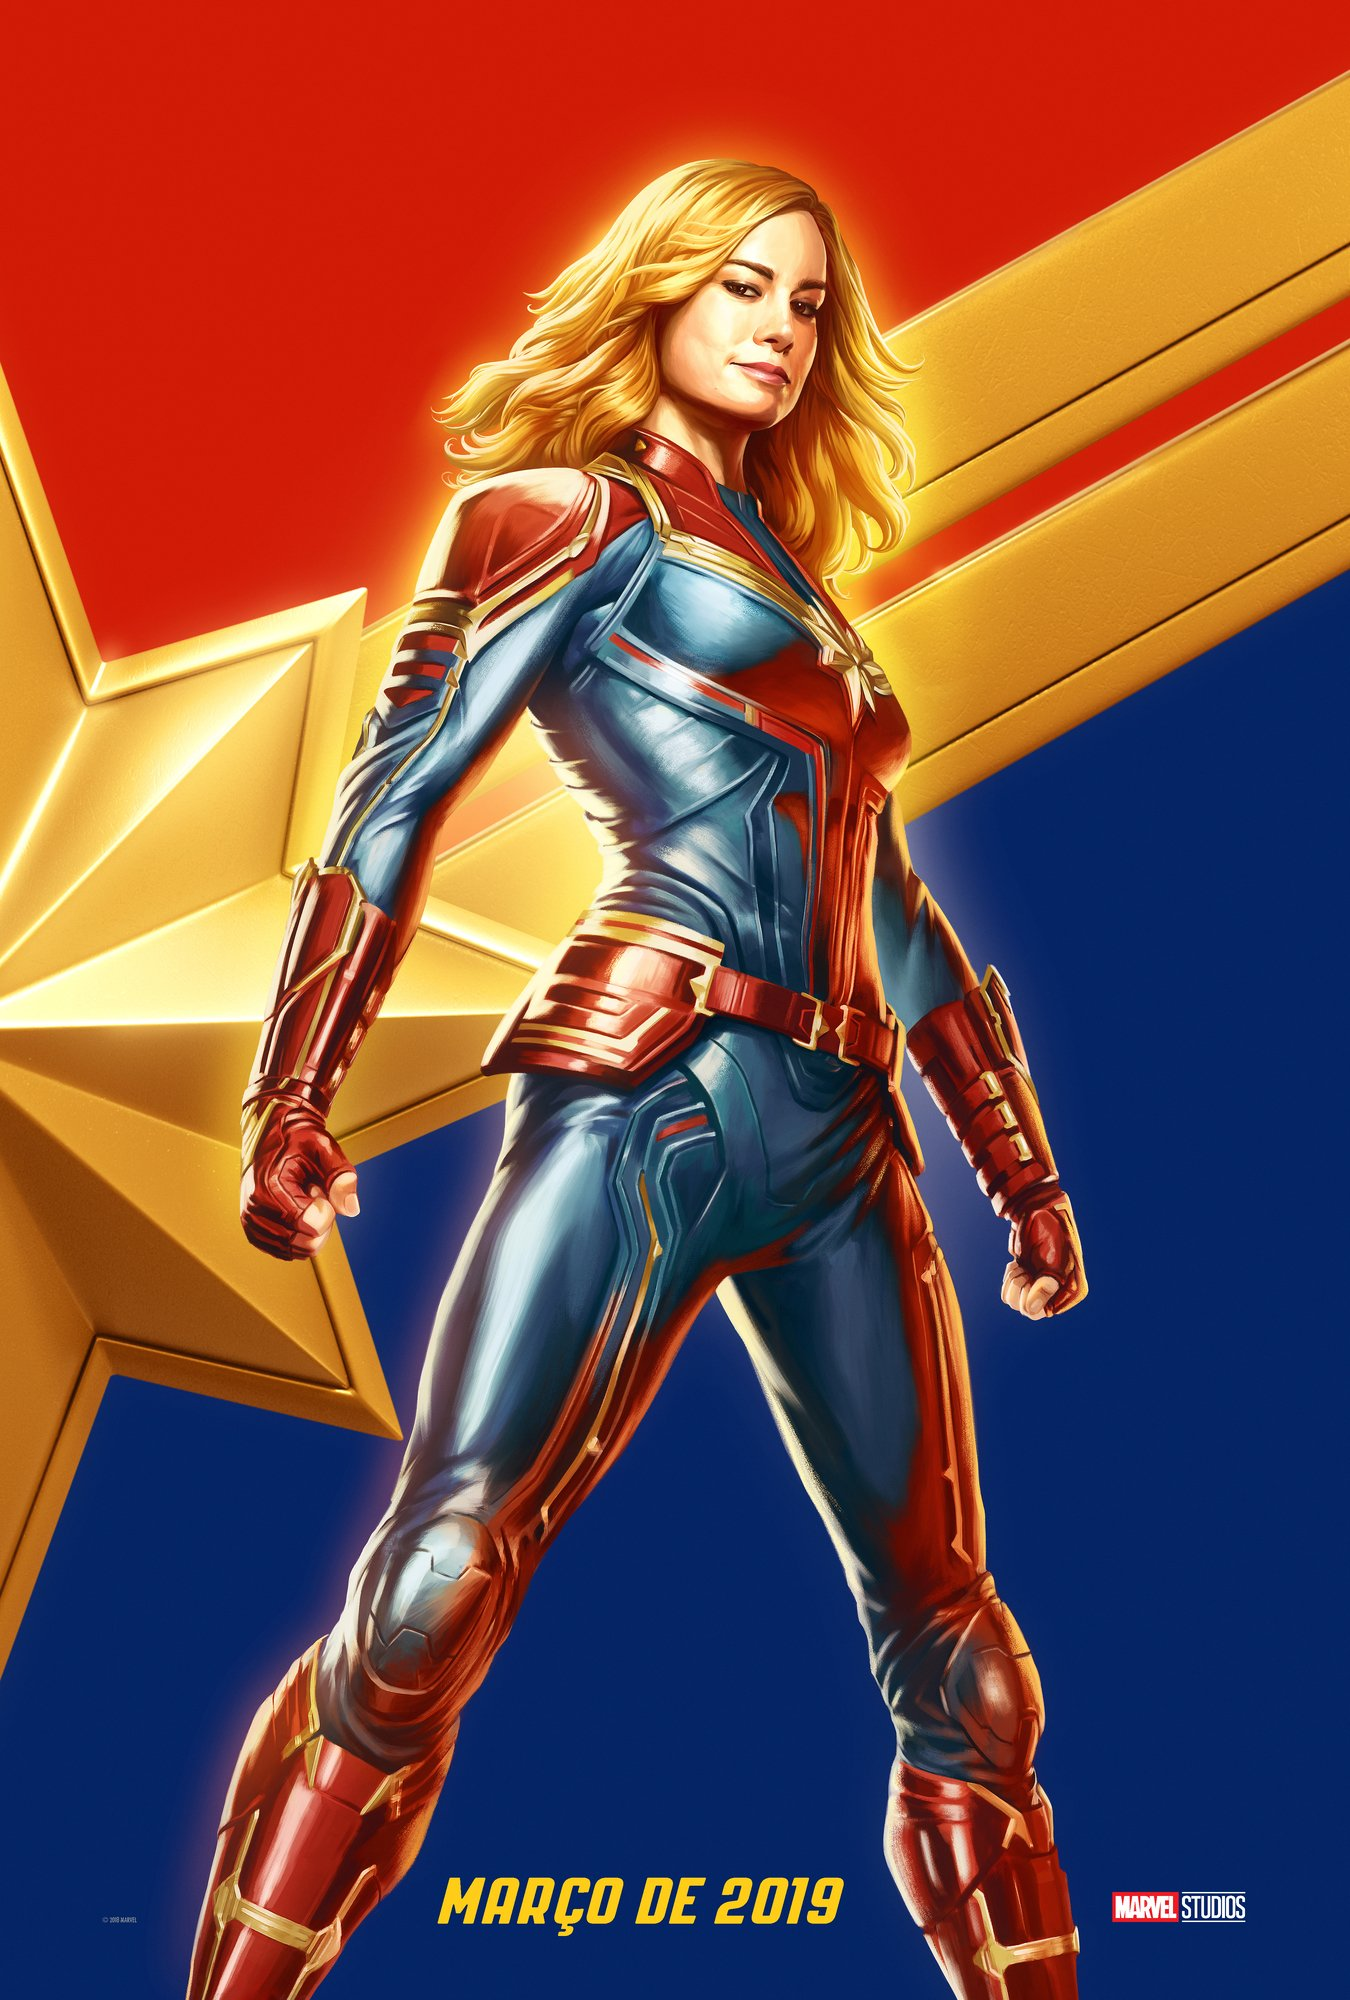 Captain Marvel Exclusive Ccxp Poster Released Online By Marvel